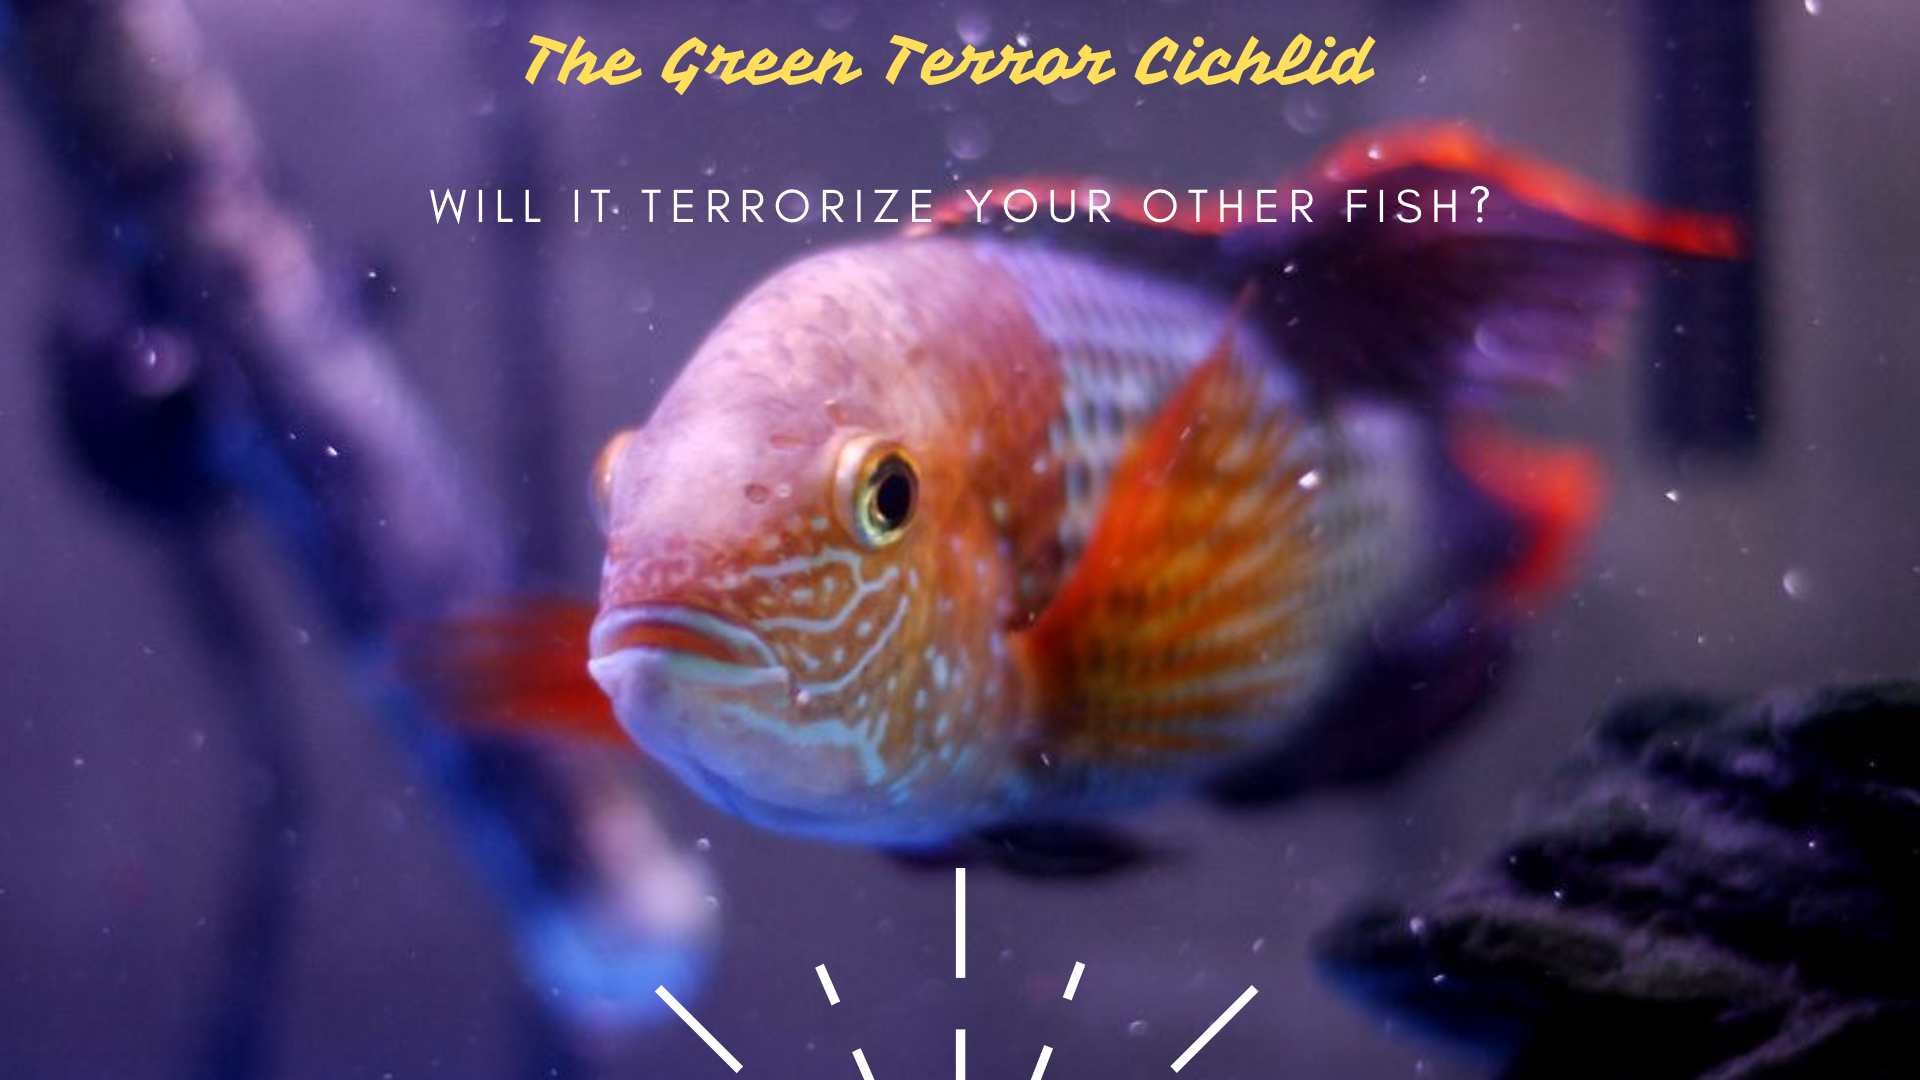 The Green Terror Cichlid - Will It Terrorize Your Other Fish?